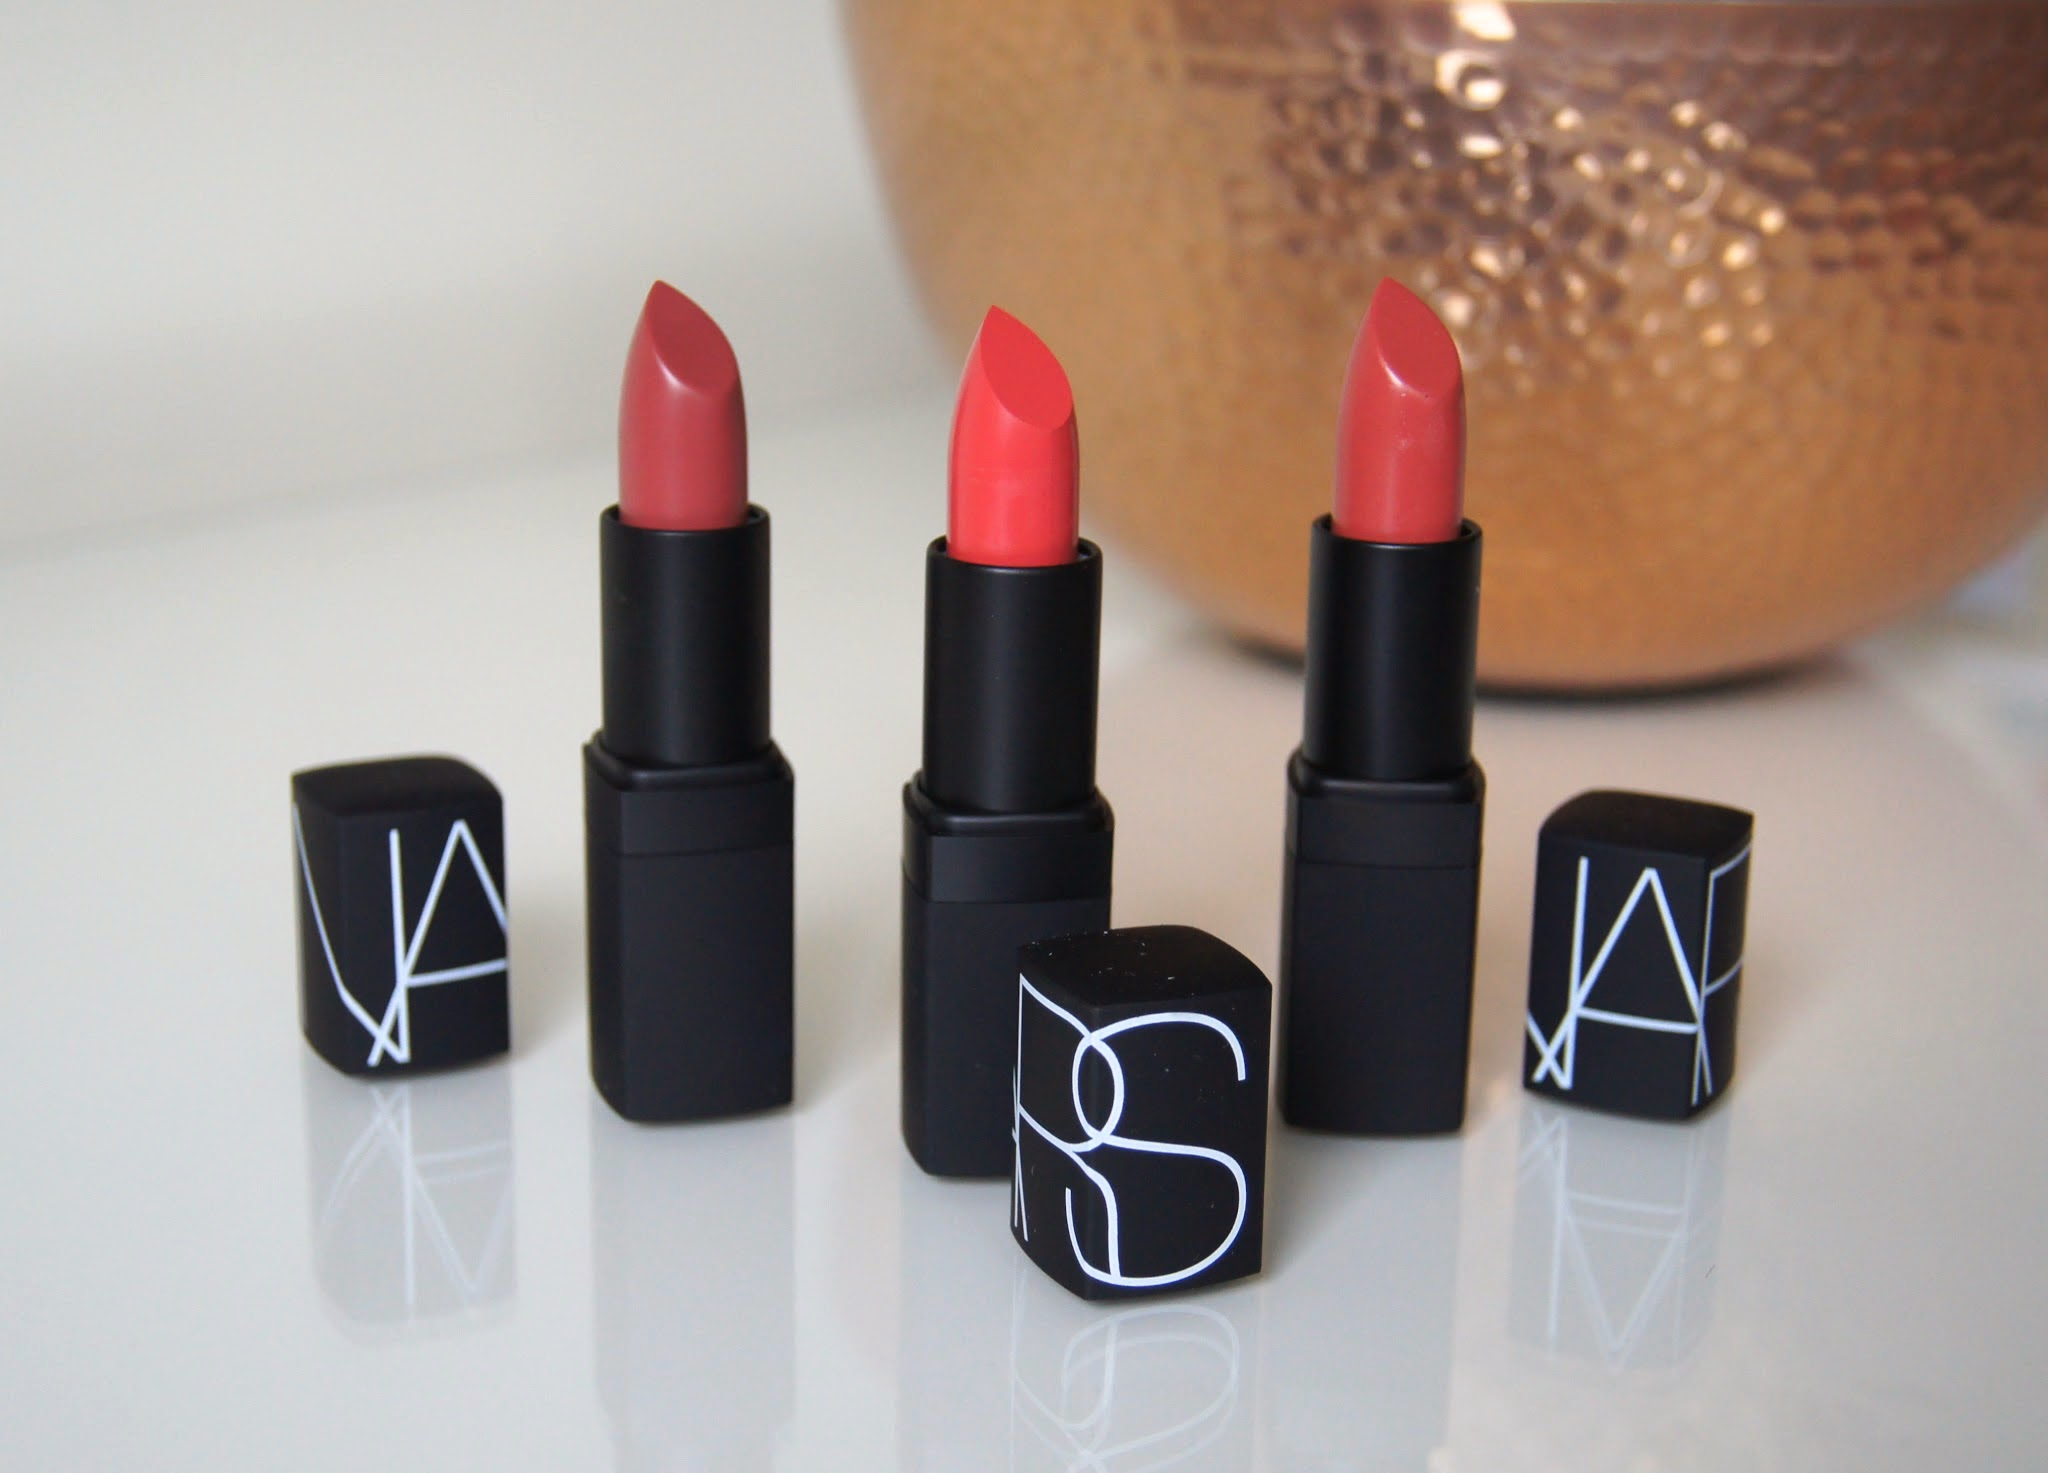 nars dolce vita niagara mayflower lipstick review swatches